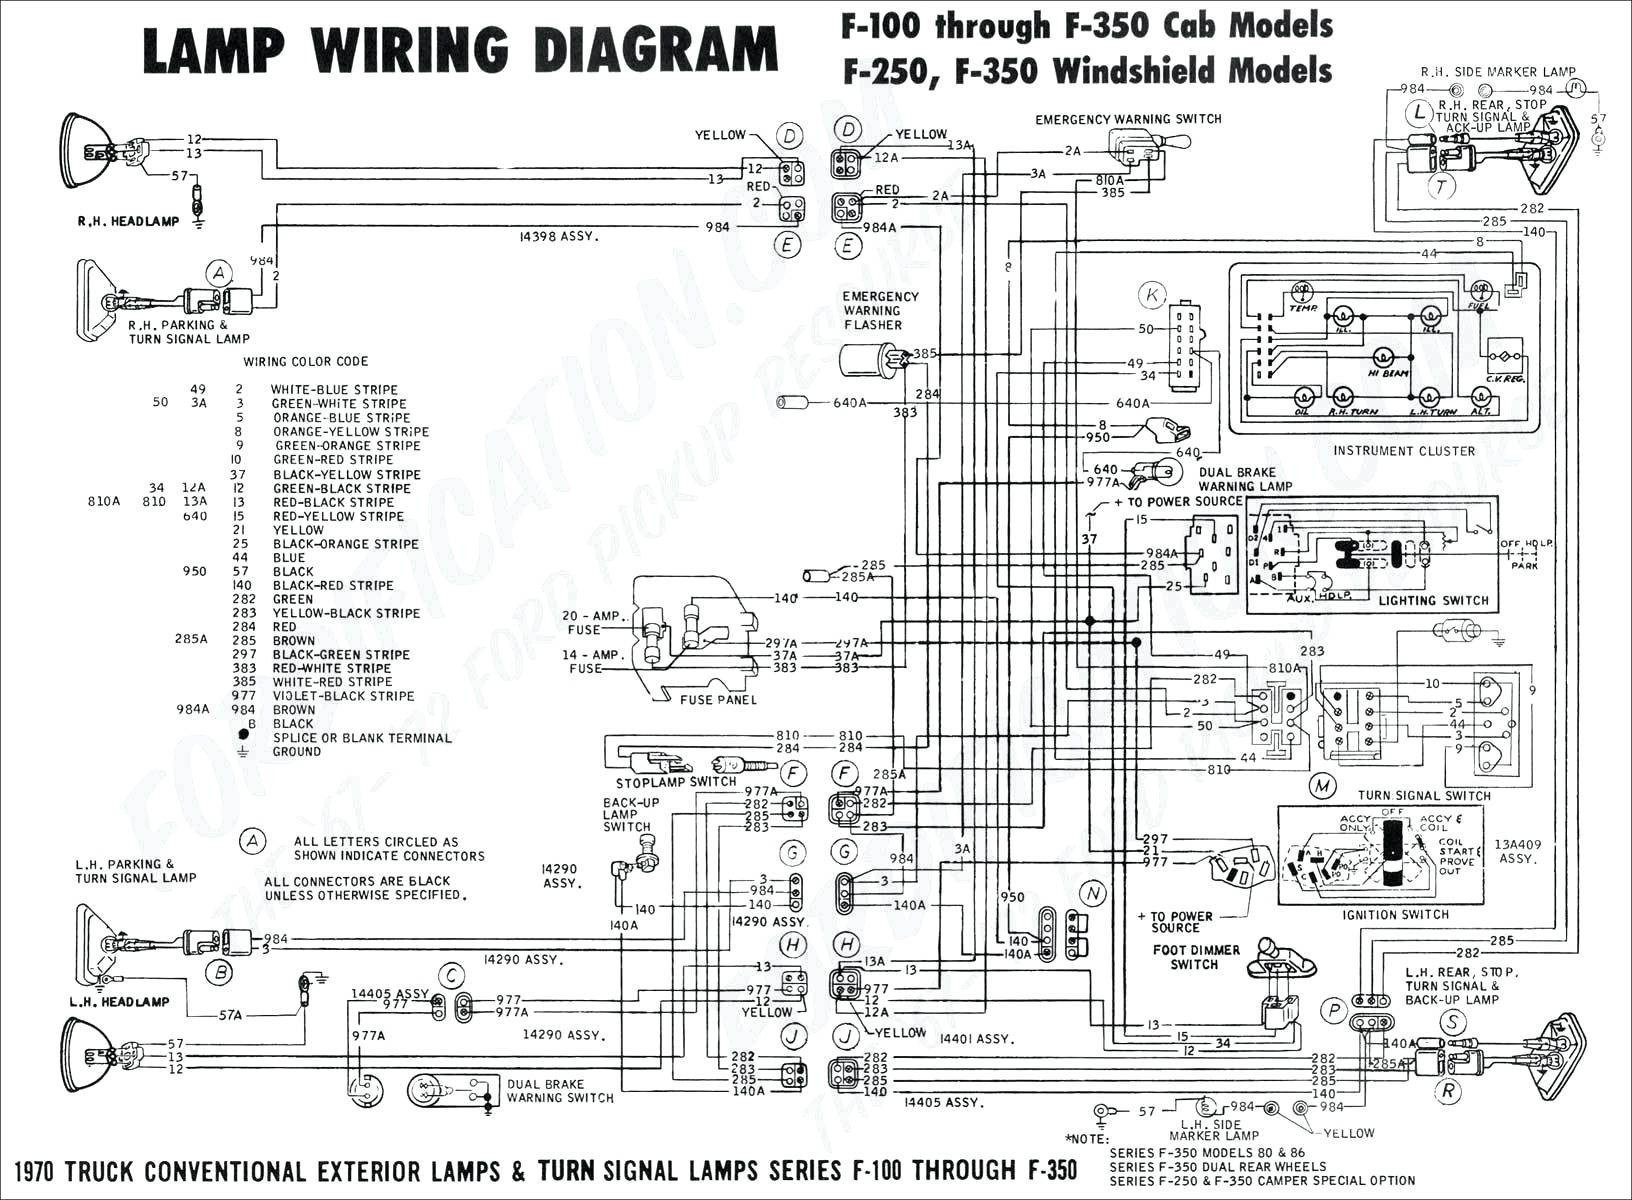 2001 F350 Wiring Diagram Rear Lights 2001 F350 Wiring Diagram Wiring Diagram Data